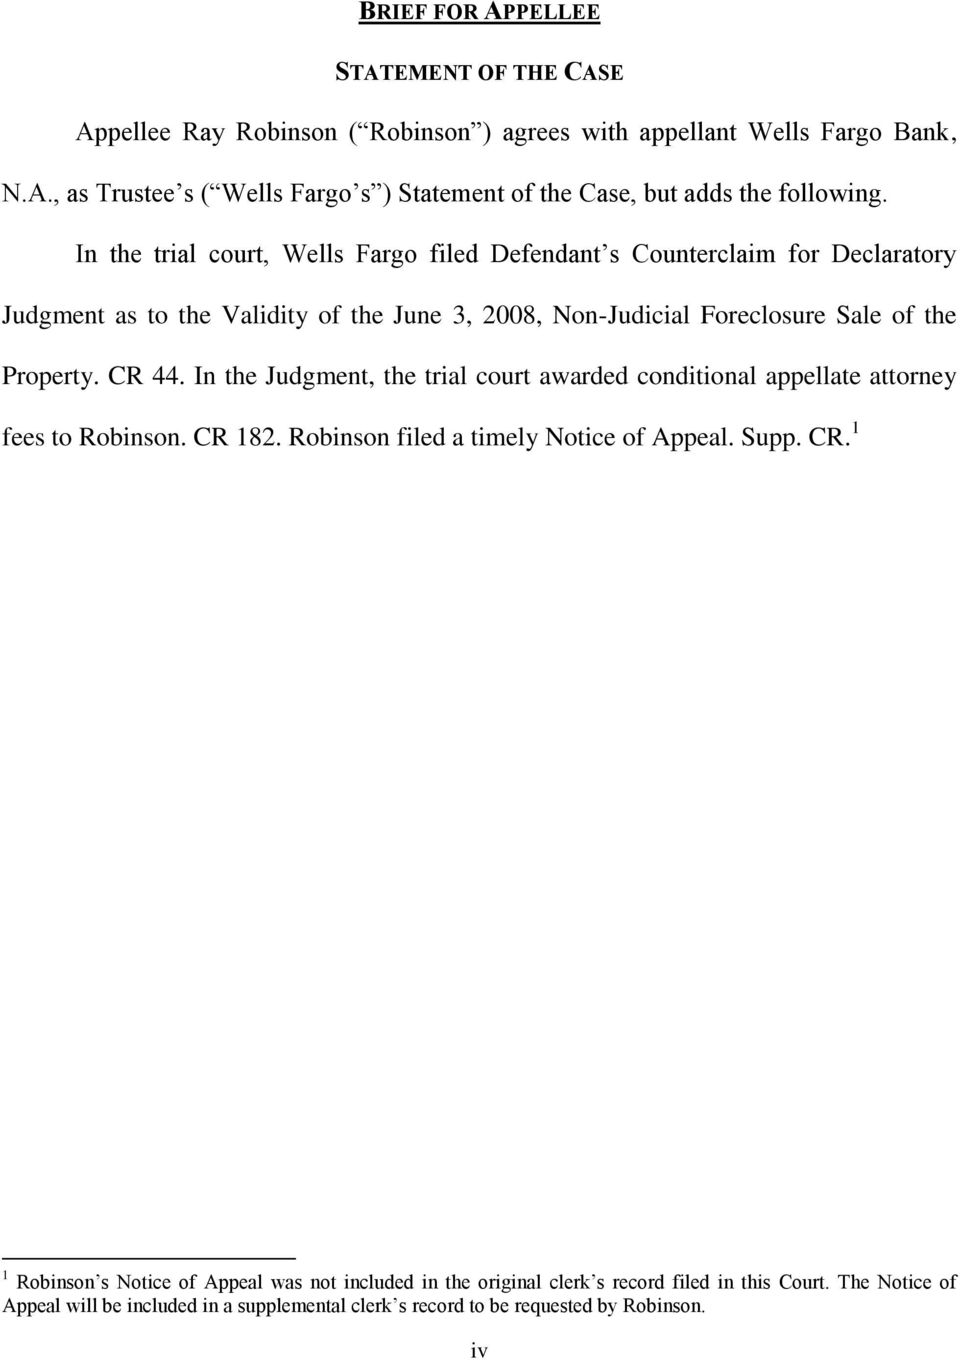 In the Judgment, the trial court awarded conditional appellate attorney fees to Robinson. CR